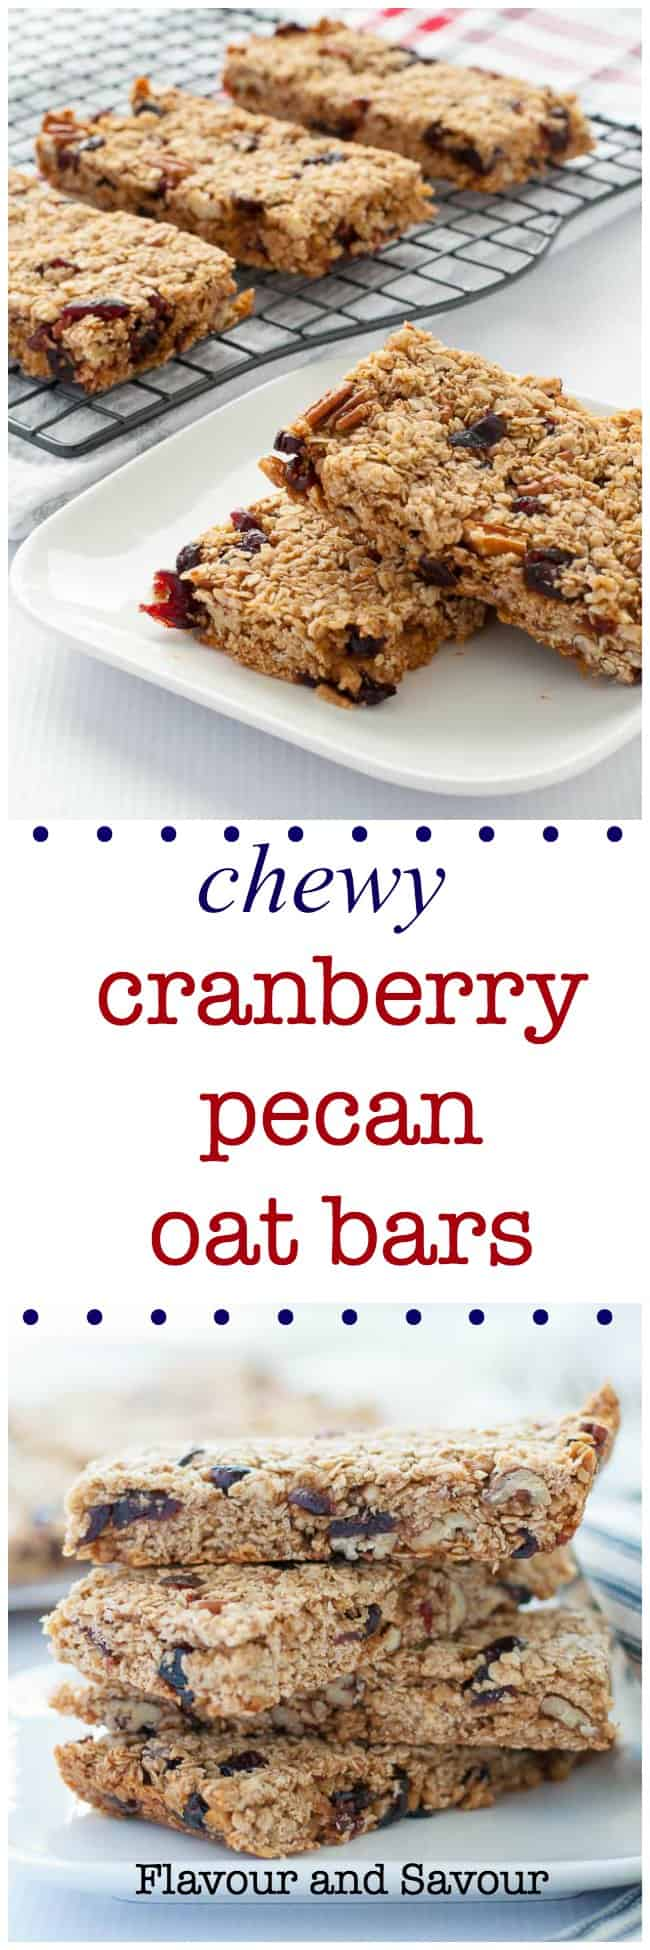 These Chewy Cranberry Pecan Oat Bars are naturally sweetened with honey and coconut palm sugar. They're a perfect make-ahead granola bar as they freeze well. Great for lunches. #GlutenFree #DairyFree #GranolaBar #cranberries